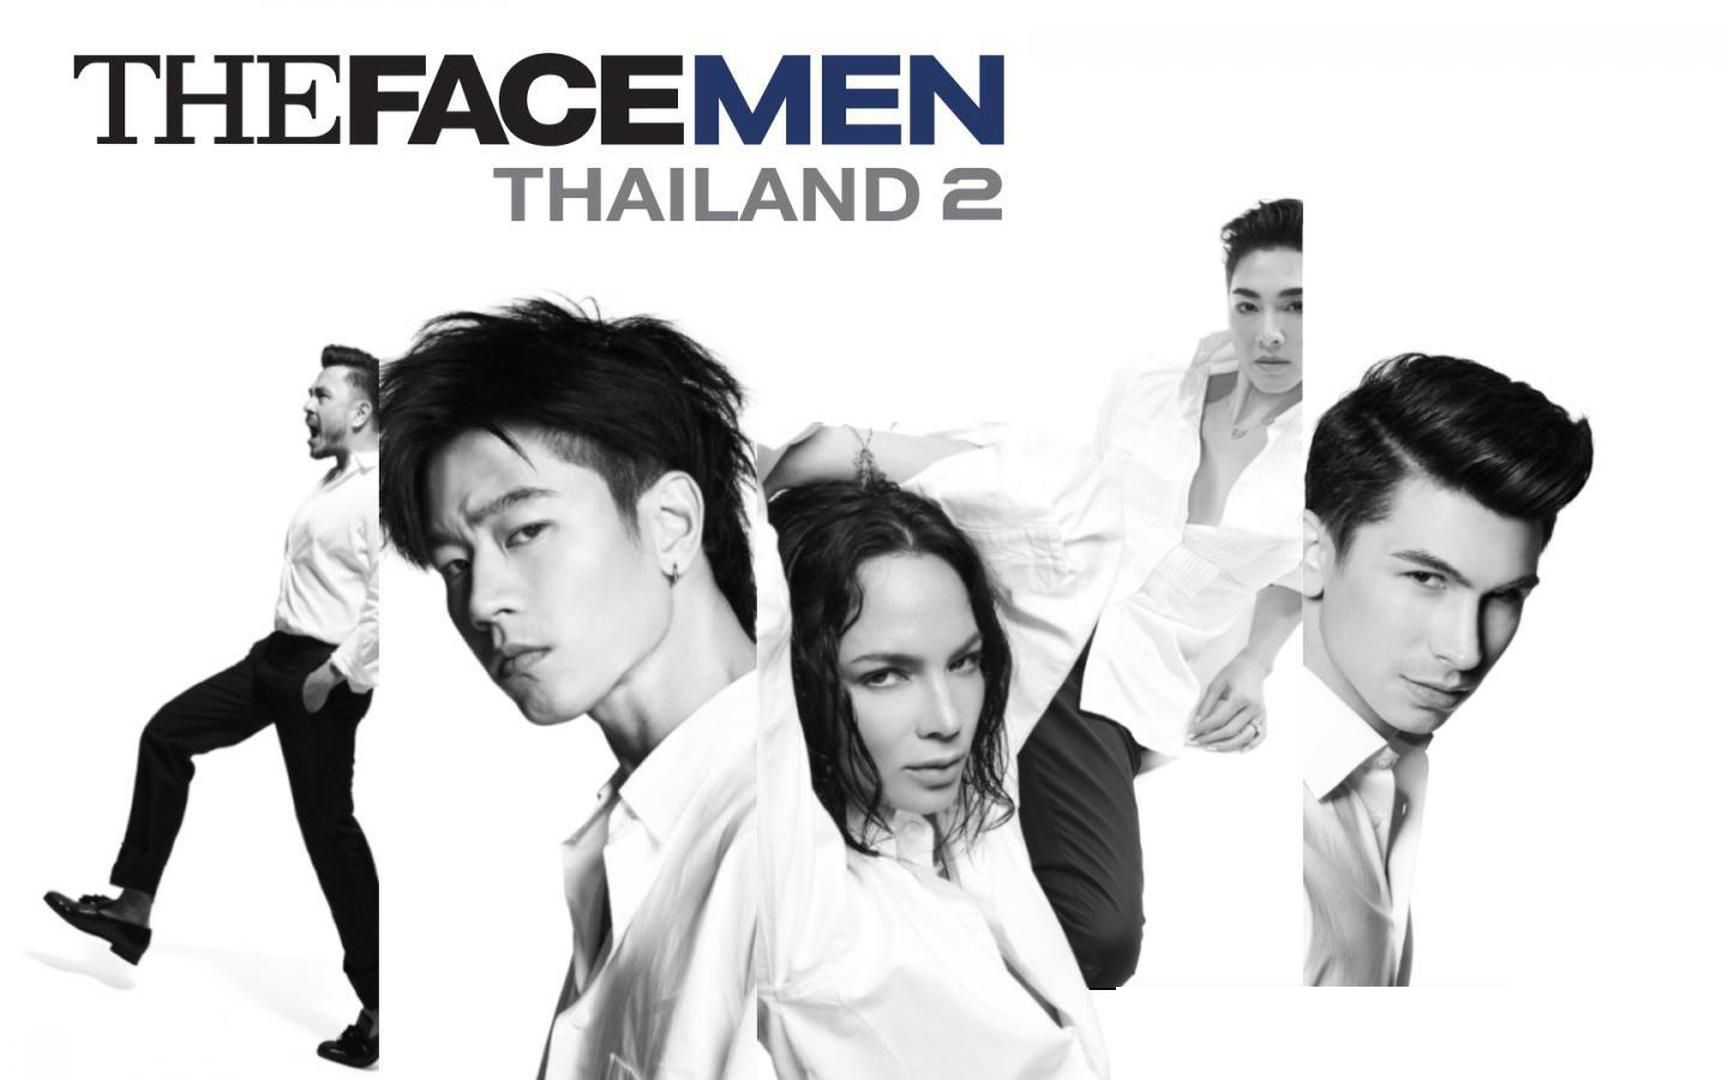 【泰国/综艺】The Face Men Thailand 2【生肉】10/26更1-3